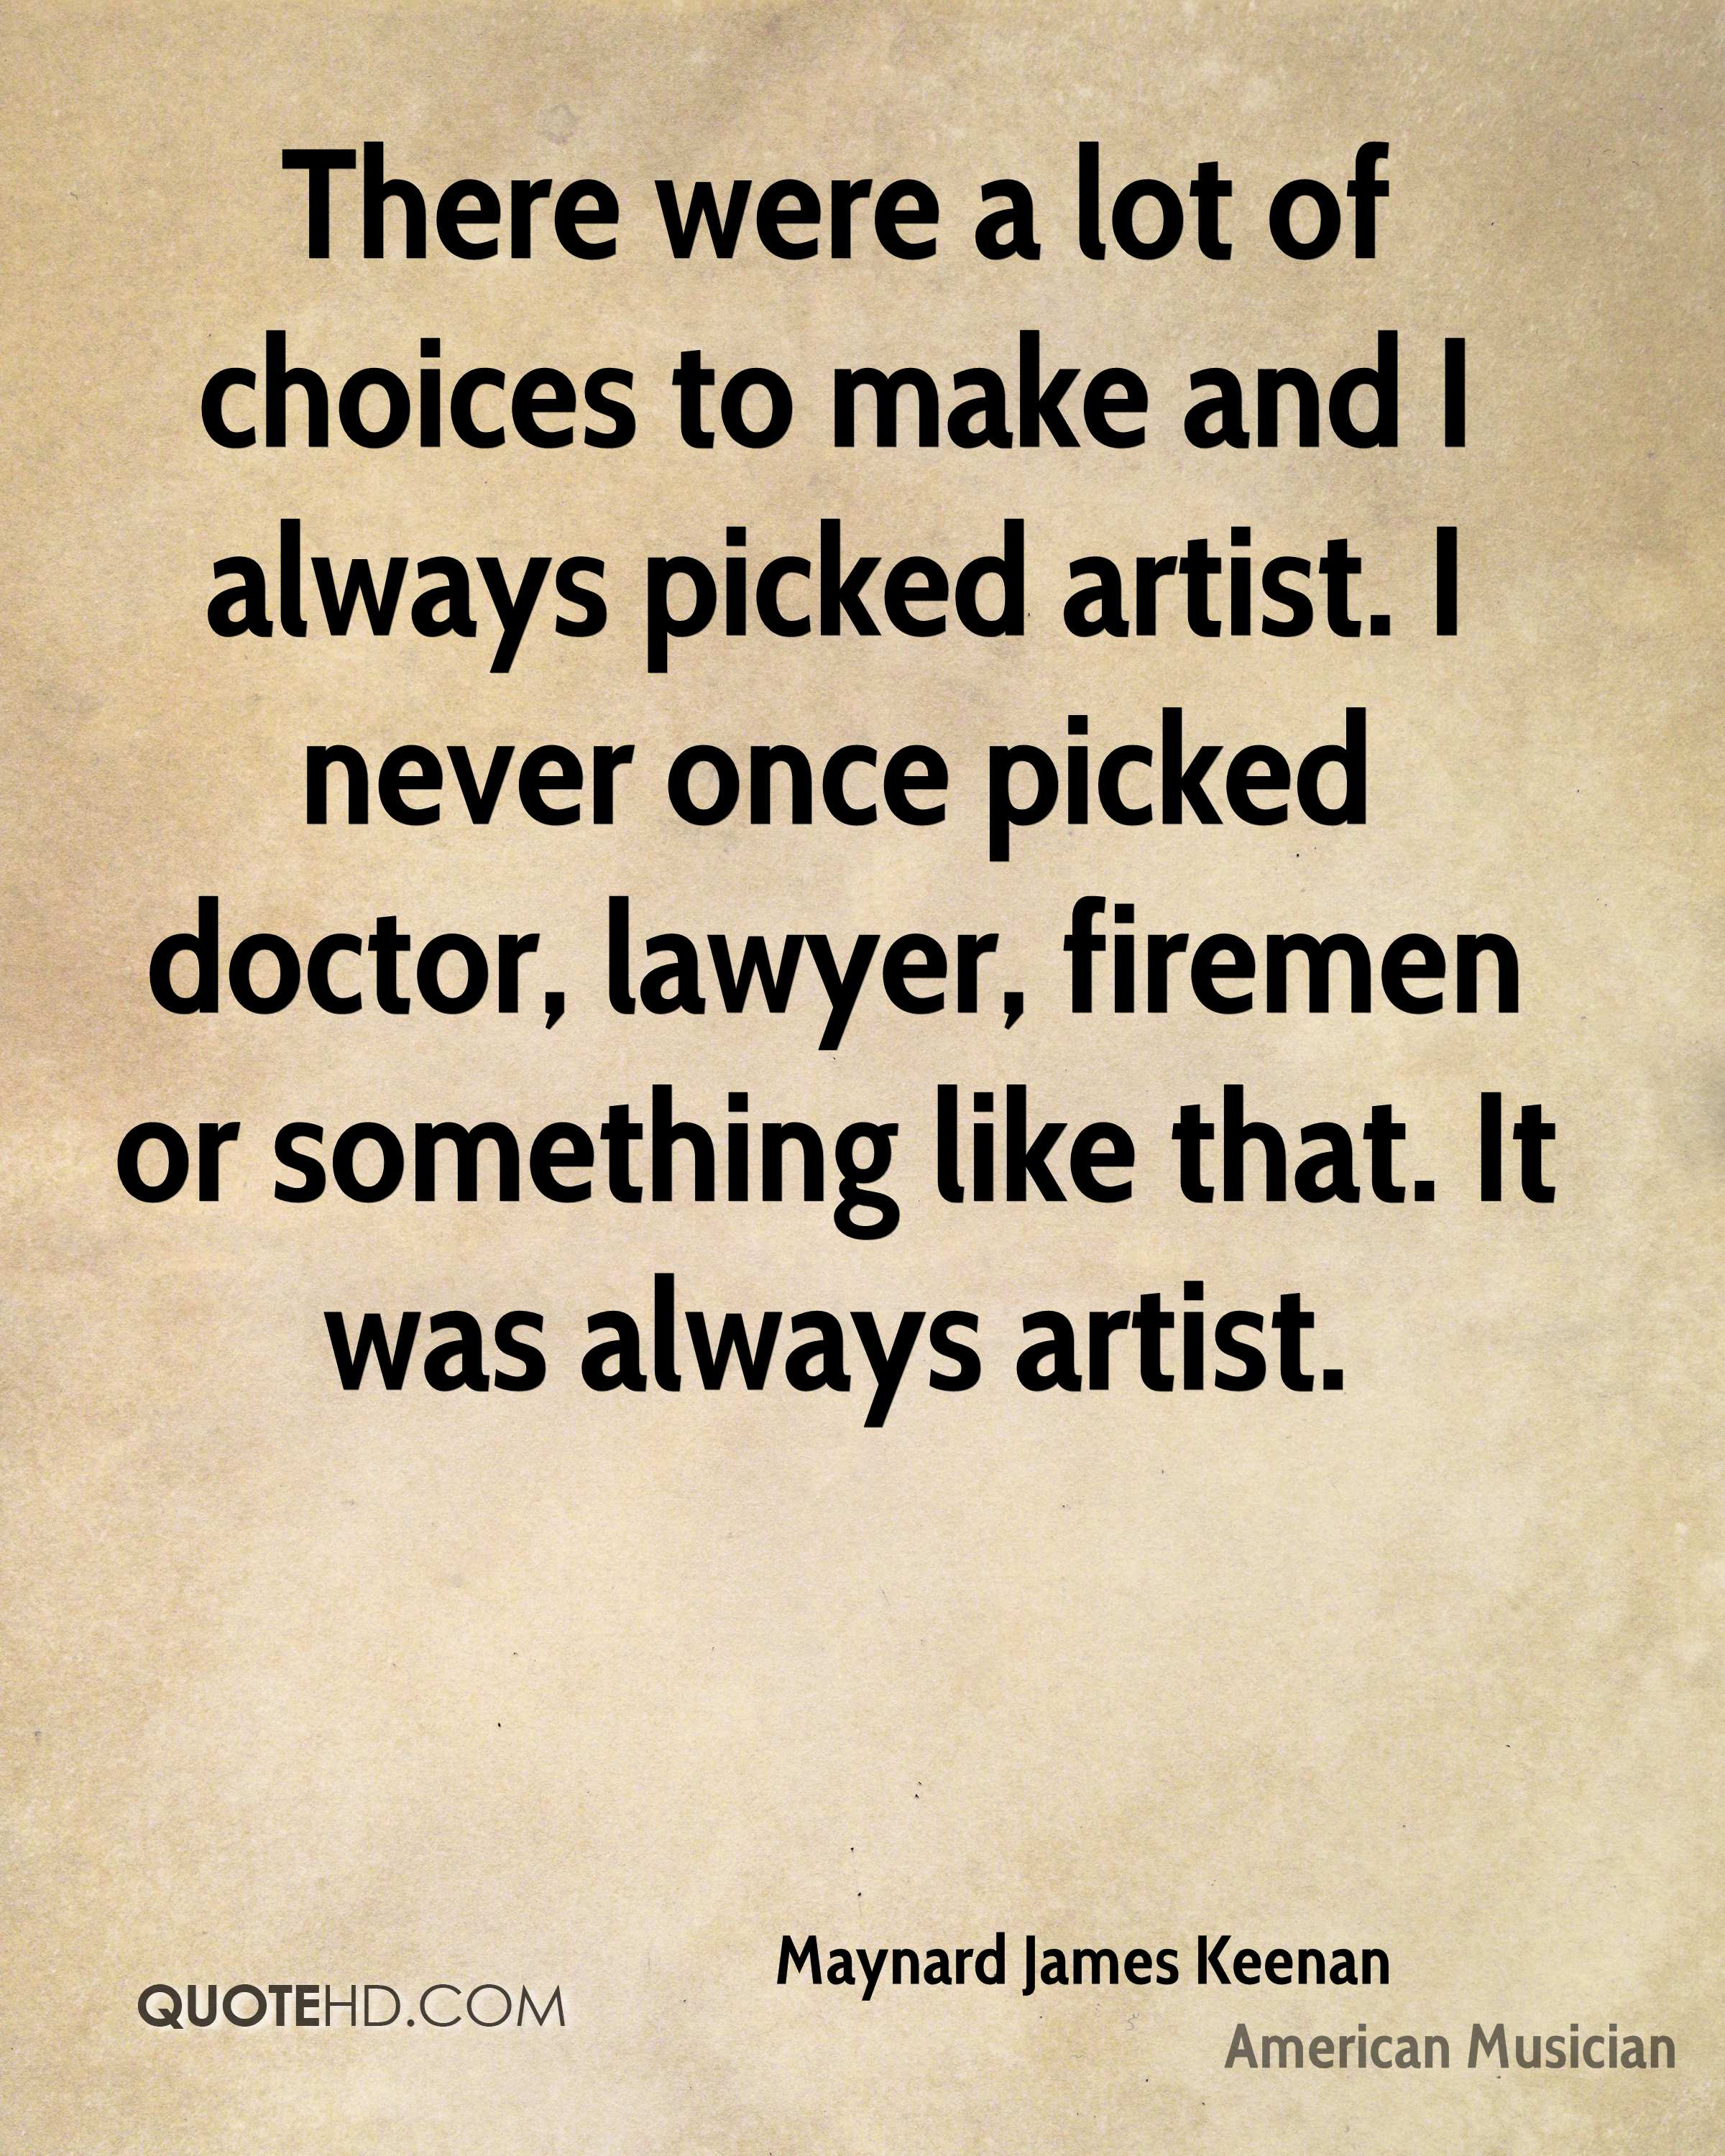 There were a lot of choices to make and I always picked artist. I never once picked doctor, lawyer, firemen or something like that. It was always artist.